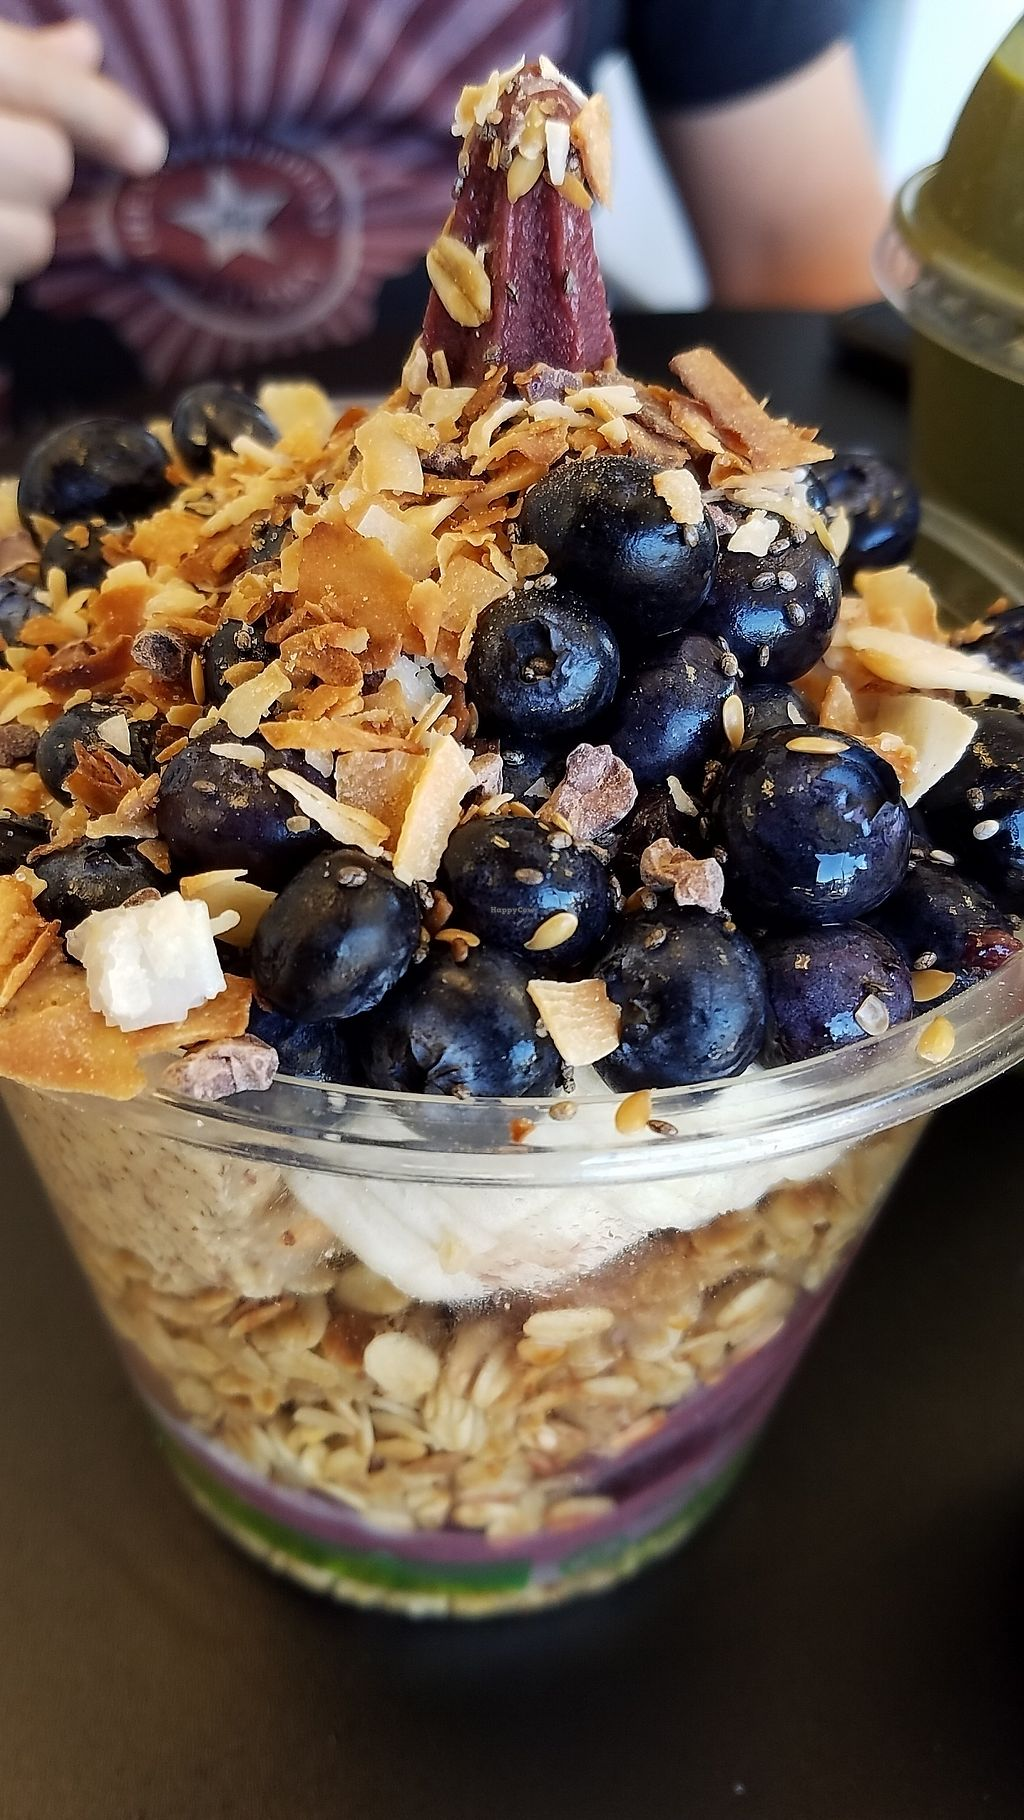 """Photo of Berry Divine Acai Bowls  by <a href=""""/members/profile/eric"""">eric</a> <br/>Acai bowl with blueberries and nut butter <br/> January 22, 2018  - <a href='/contact/abuse/image/110063/349584'>Report</a>"""